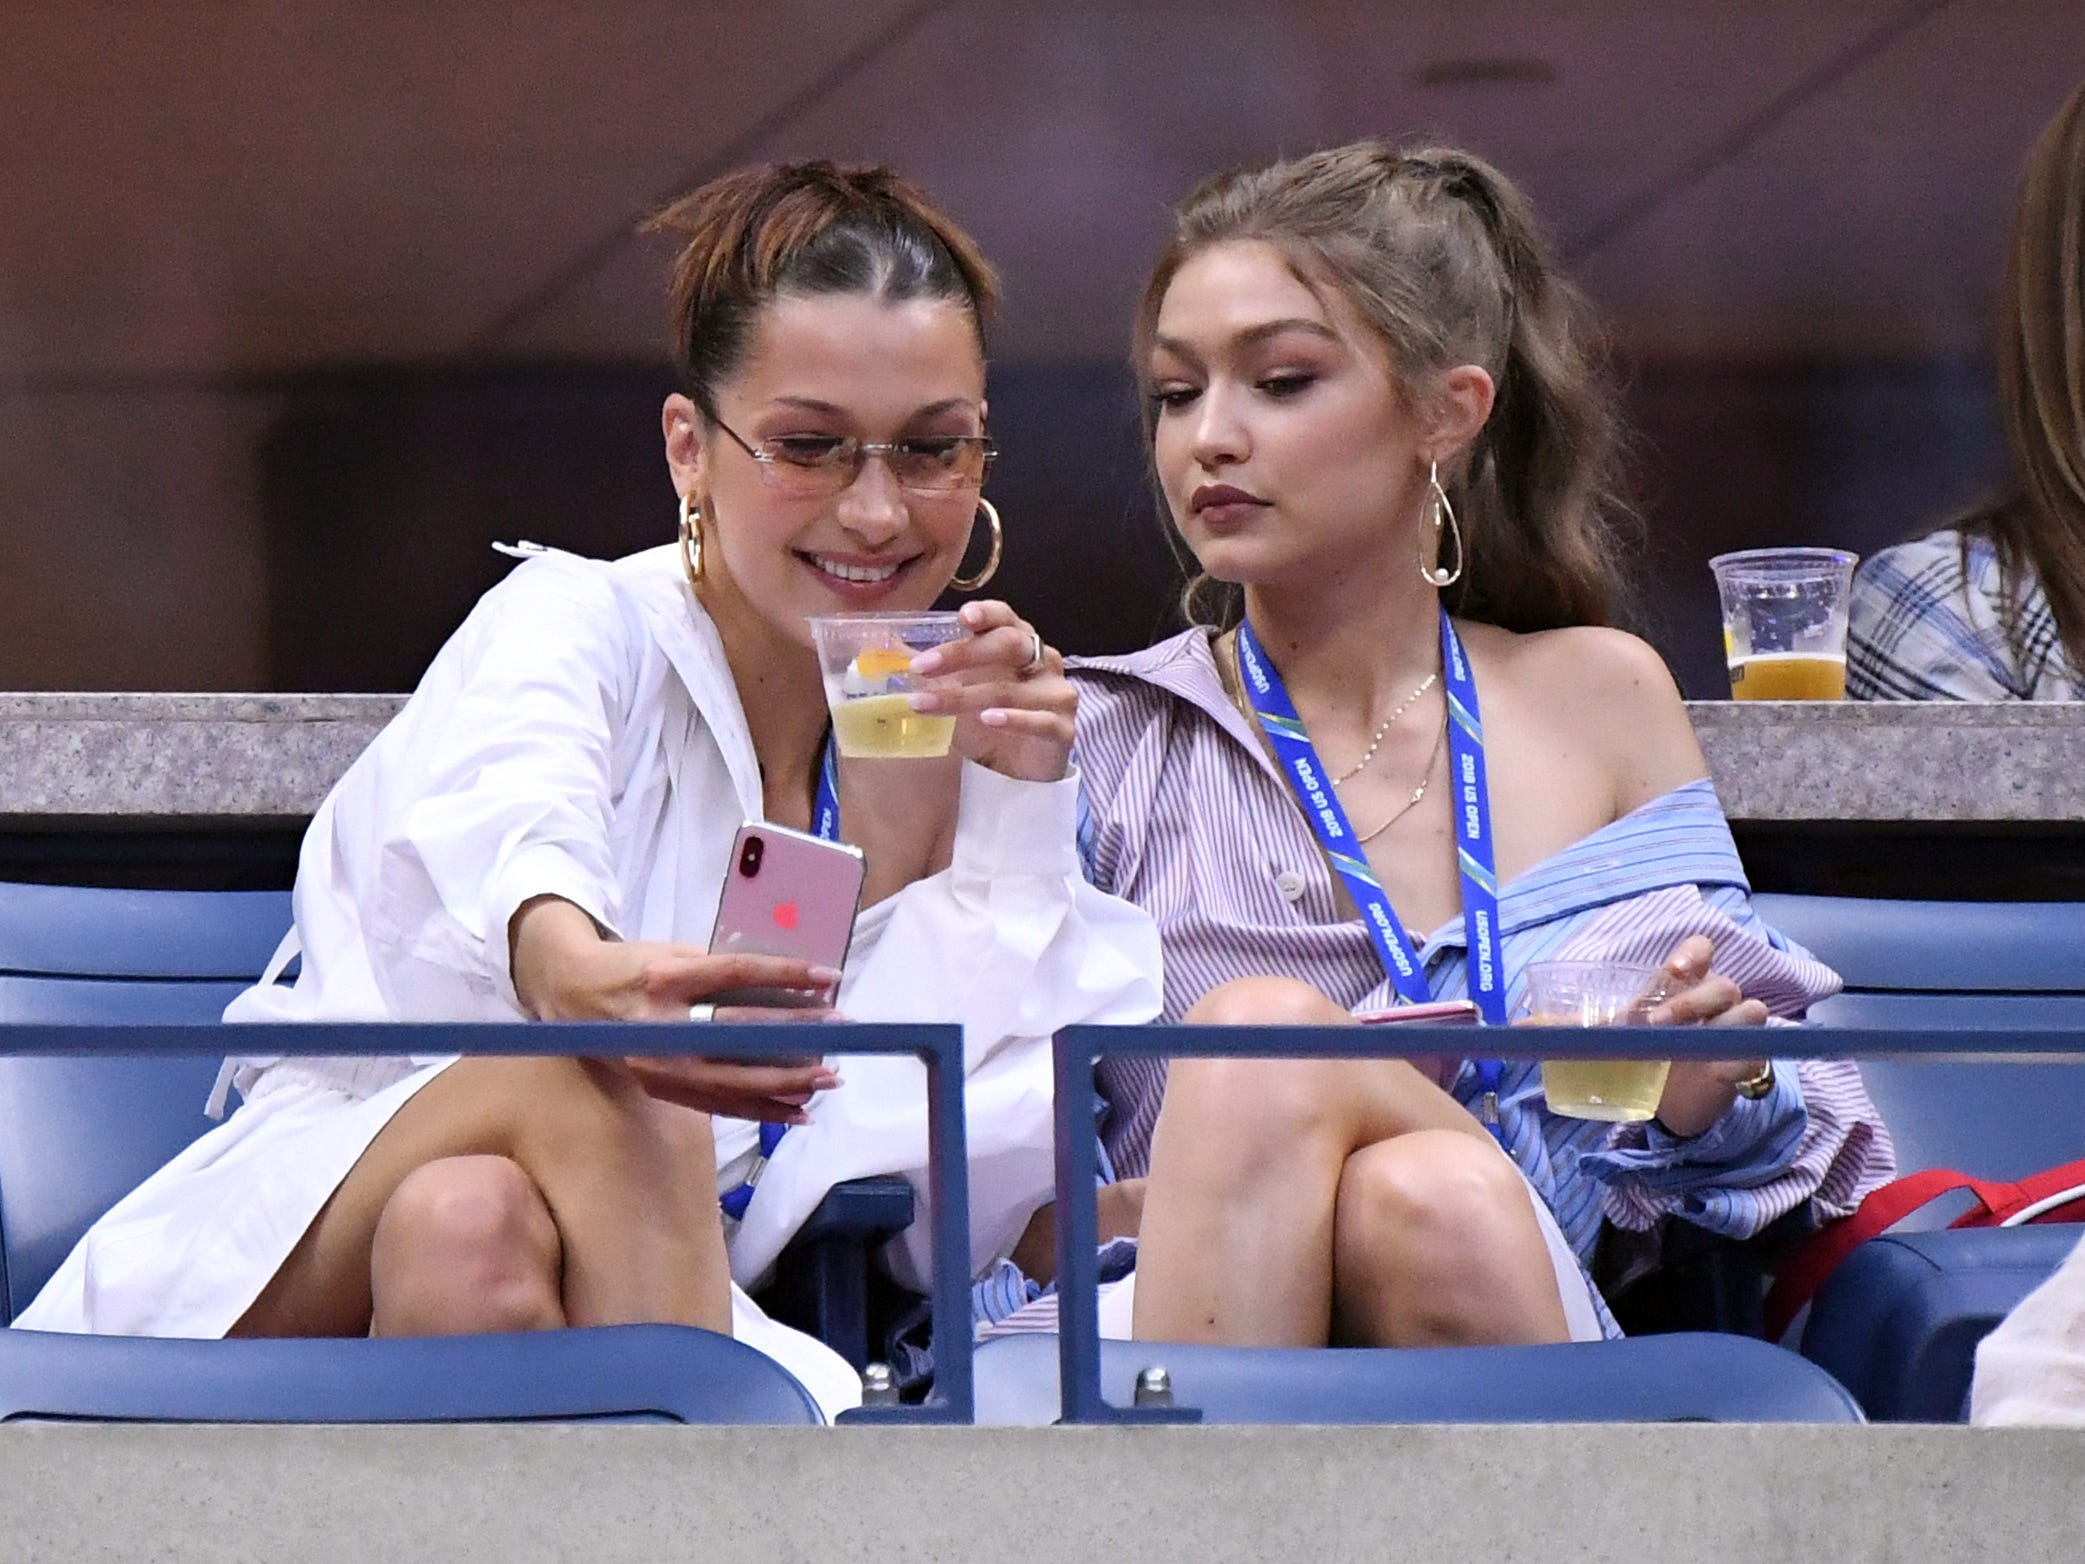 Models Bella Hadid, left, and Gigi Hadid take a selfie before Serena Williams faces Karolina Pliskova in a quarterfinal match.